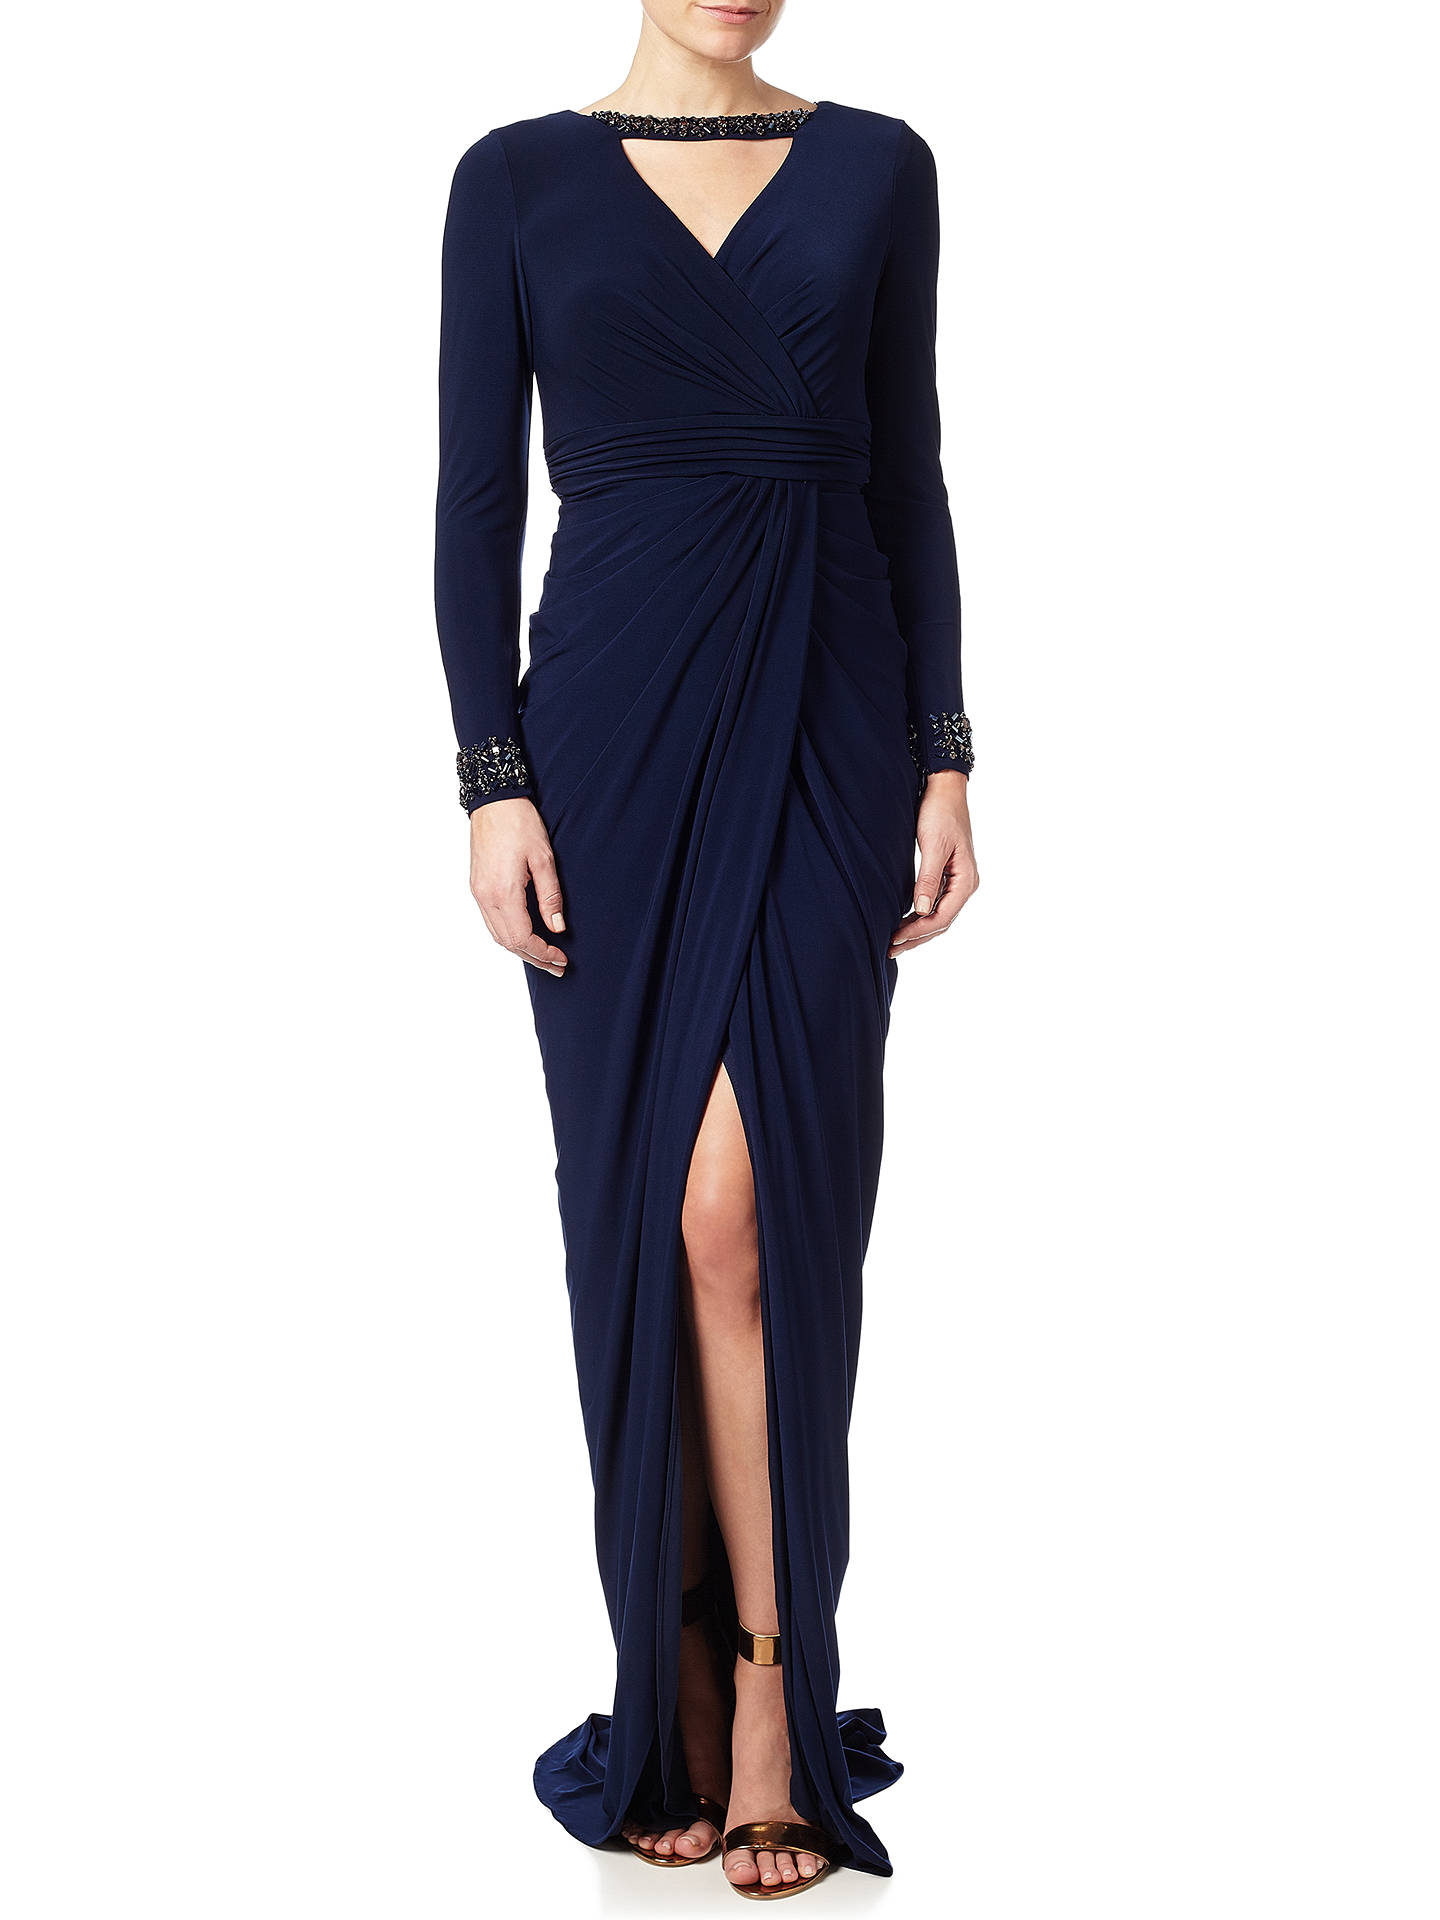 fee3dbea6d77 Adrianna Papell Beaded Wrap Jersey Dress, Midnight at John Lewis ...